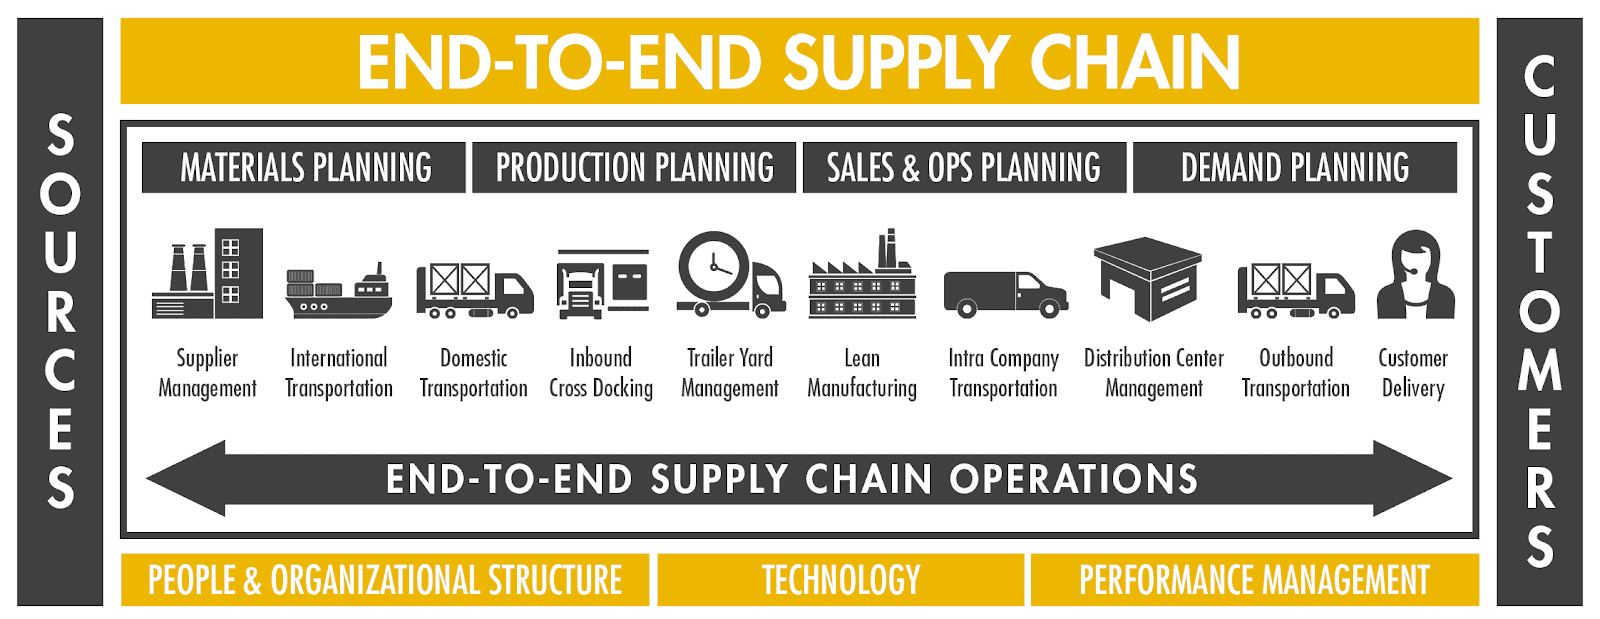 amazon Supply Chain management end to end